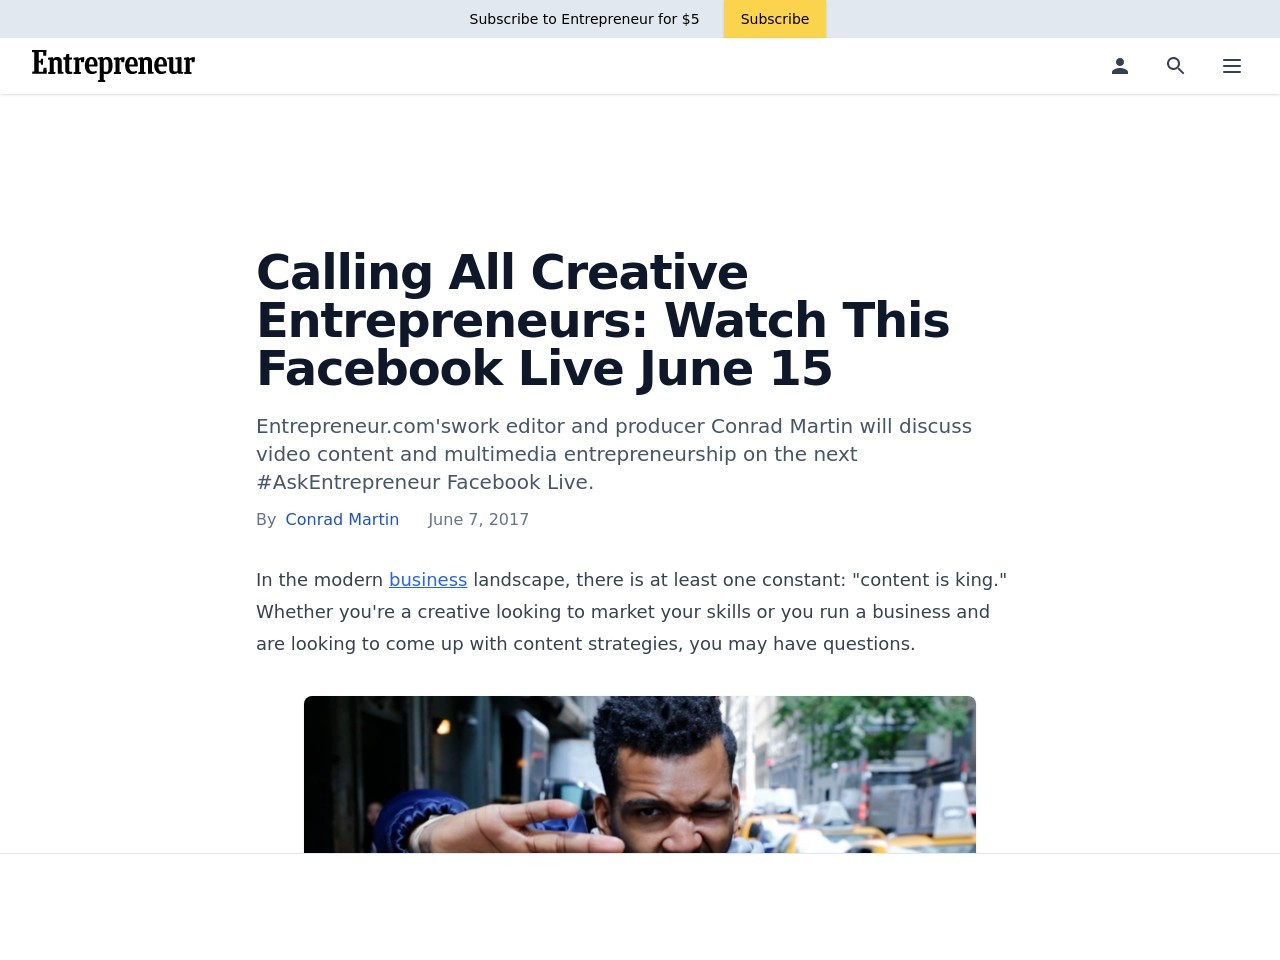 Calling All Creative Entrepreneurs: Watch This Facebook Live June 15